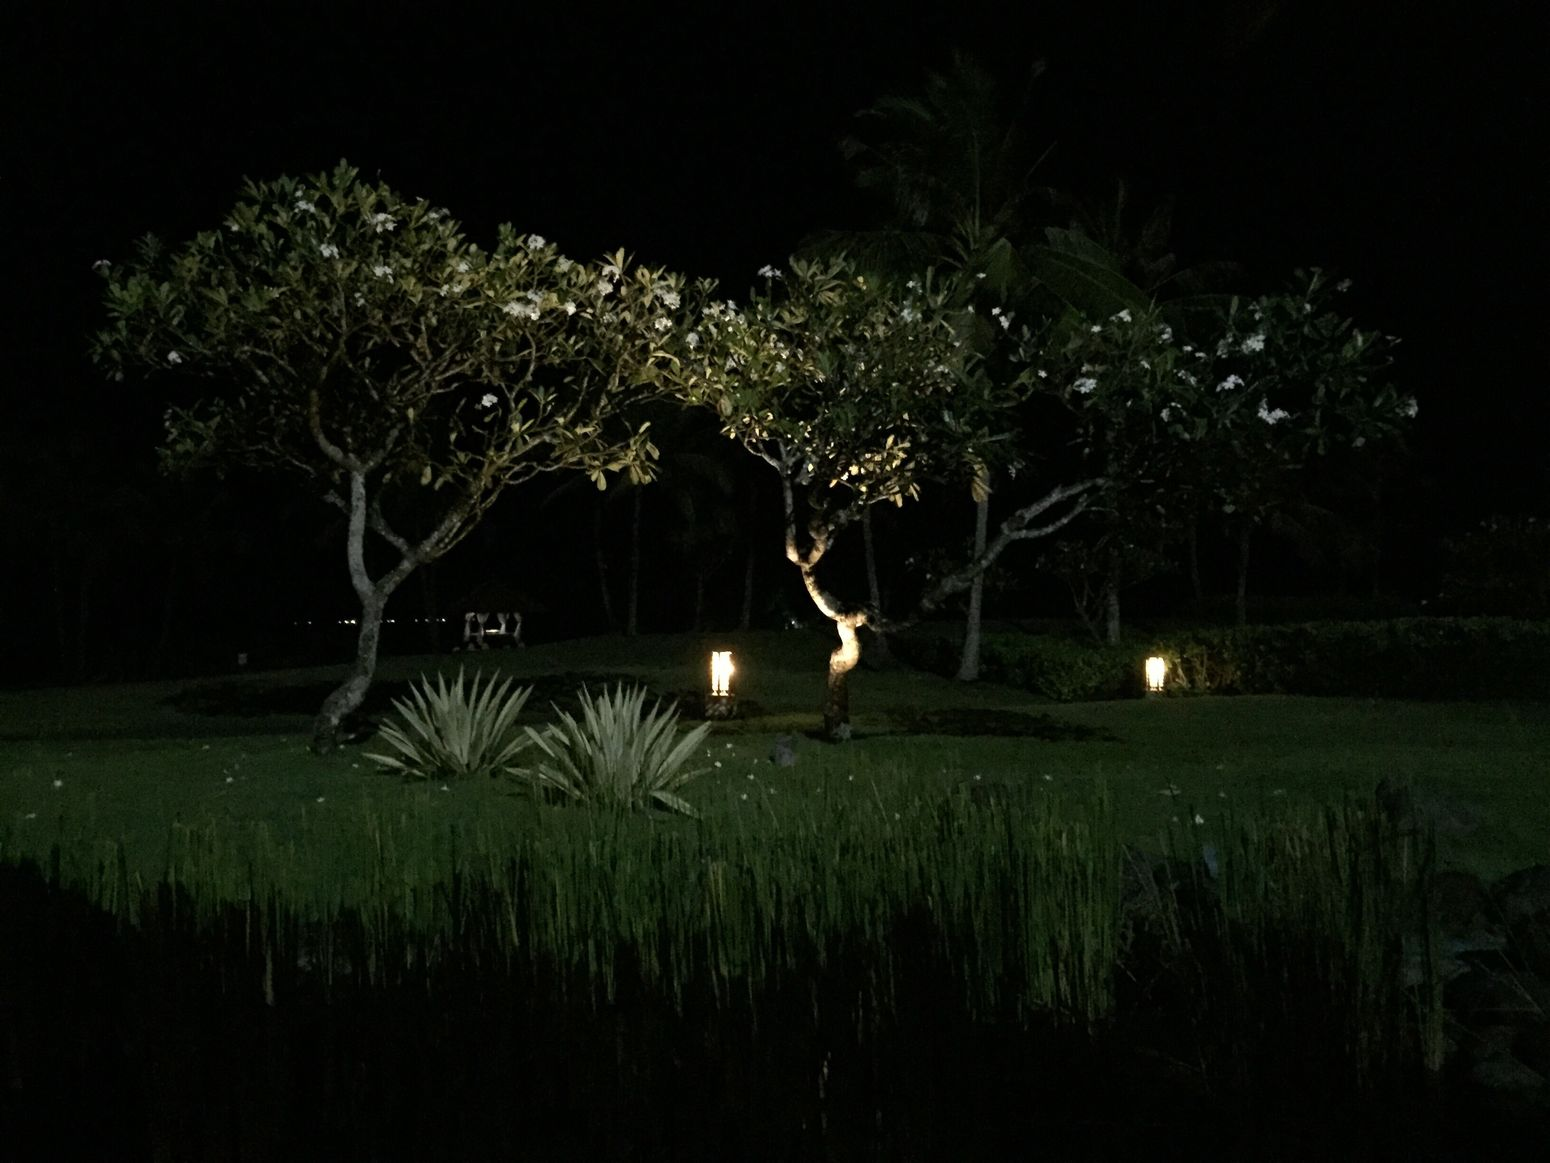 IPhoneography Gentle Lights Tree Night Landscape Outdoors No People Dark Tranquility Bali Beauty In Nature Unedited Photo Tranquil Scene